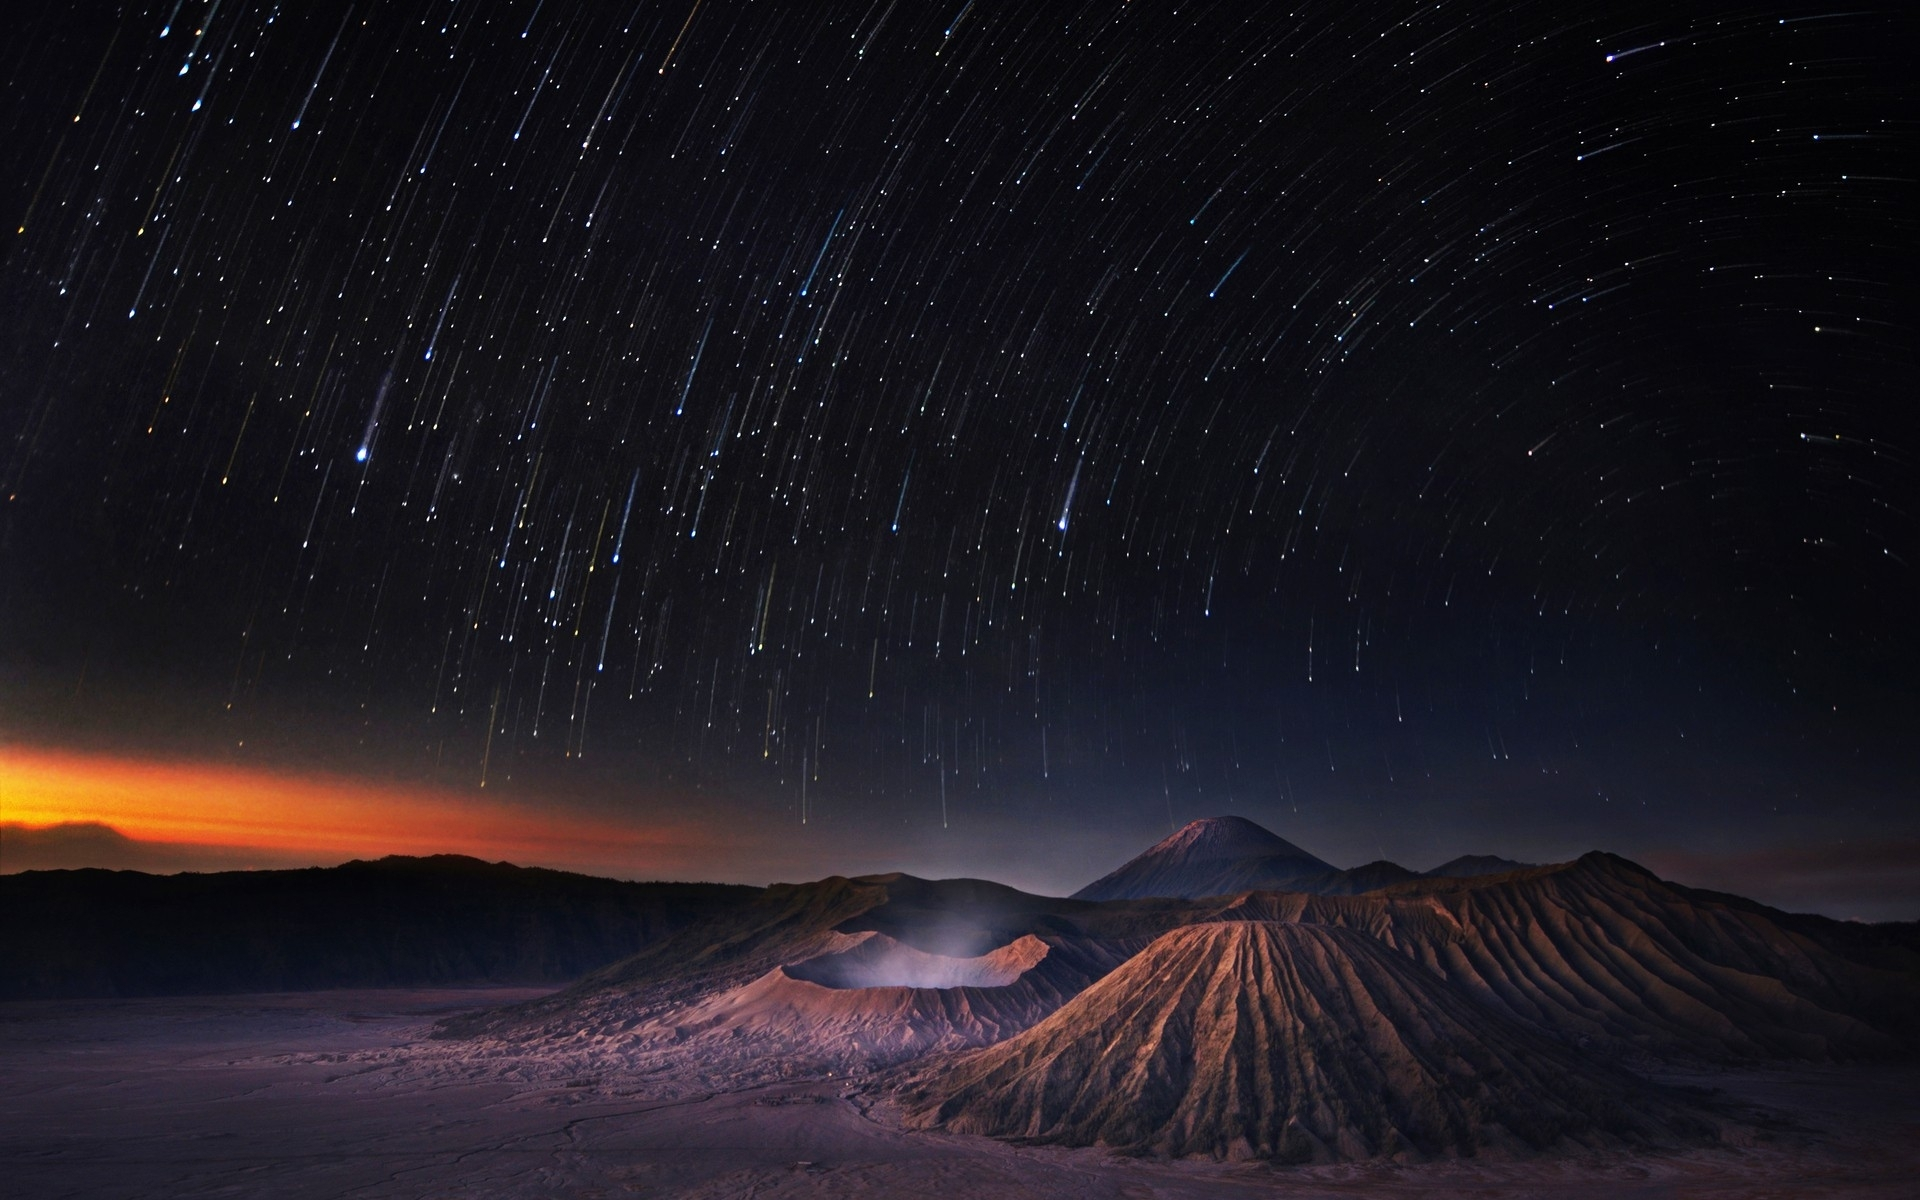 Image Star Rain Over Volcanos Wallpapers And Stock Photos